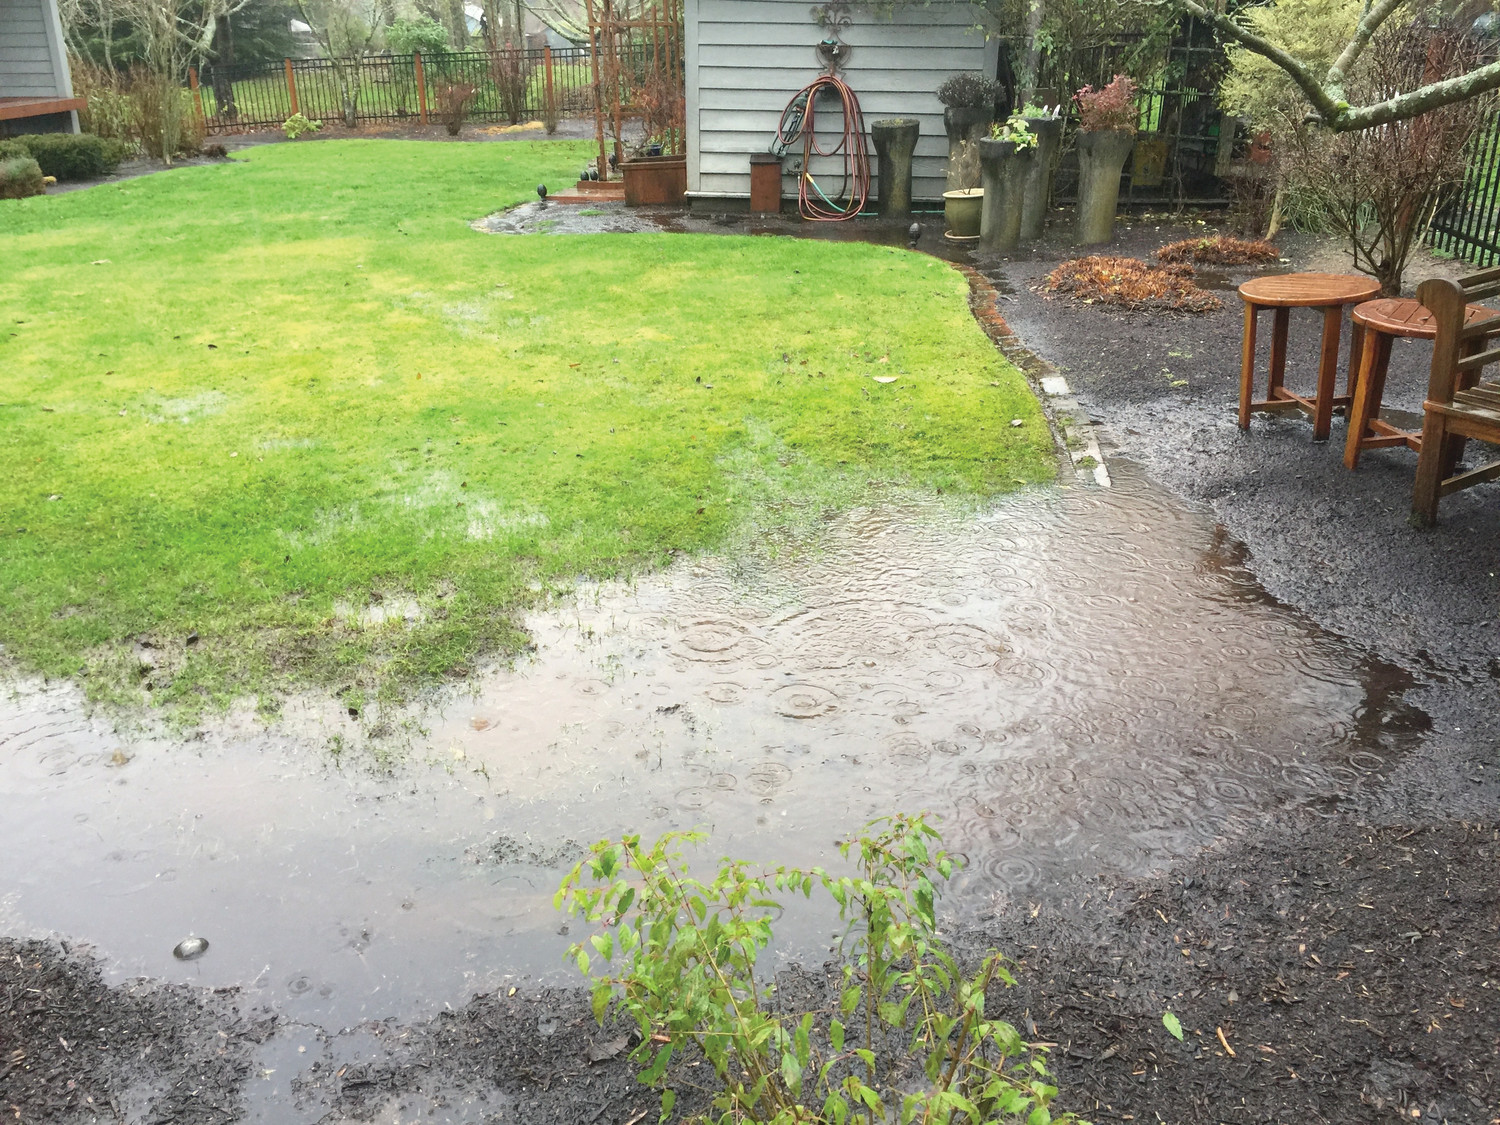 Rain Gutters Cause Many Home Drainage Problems The